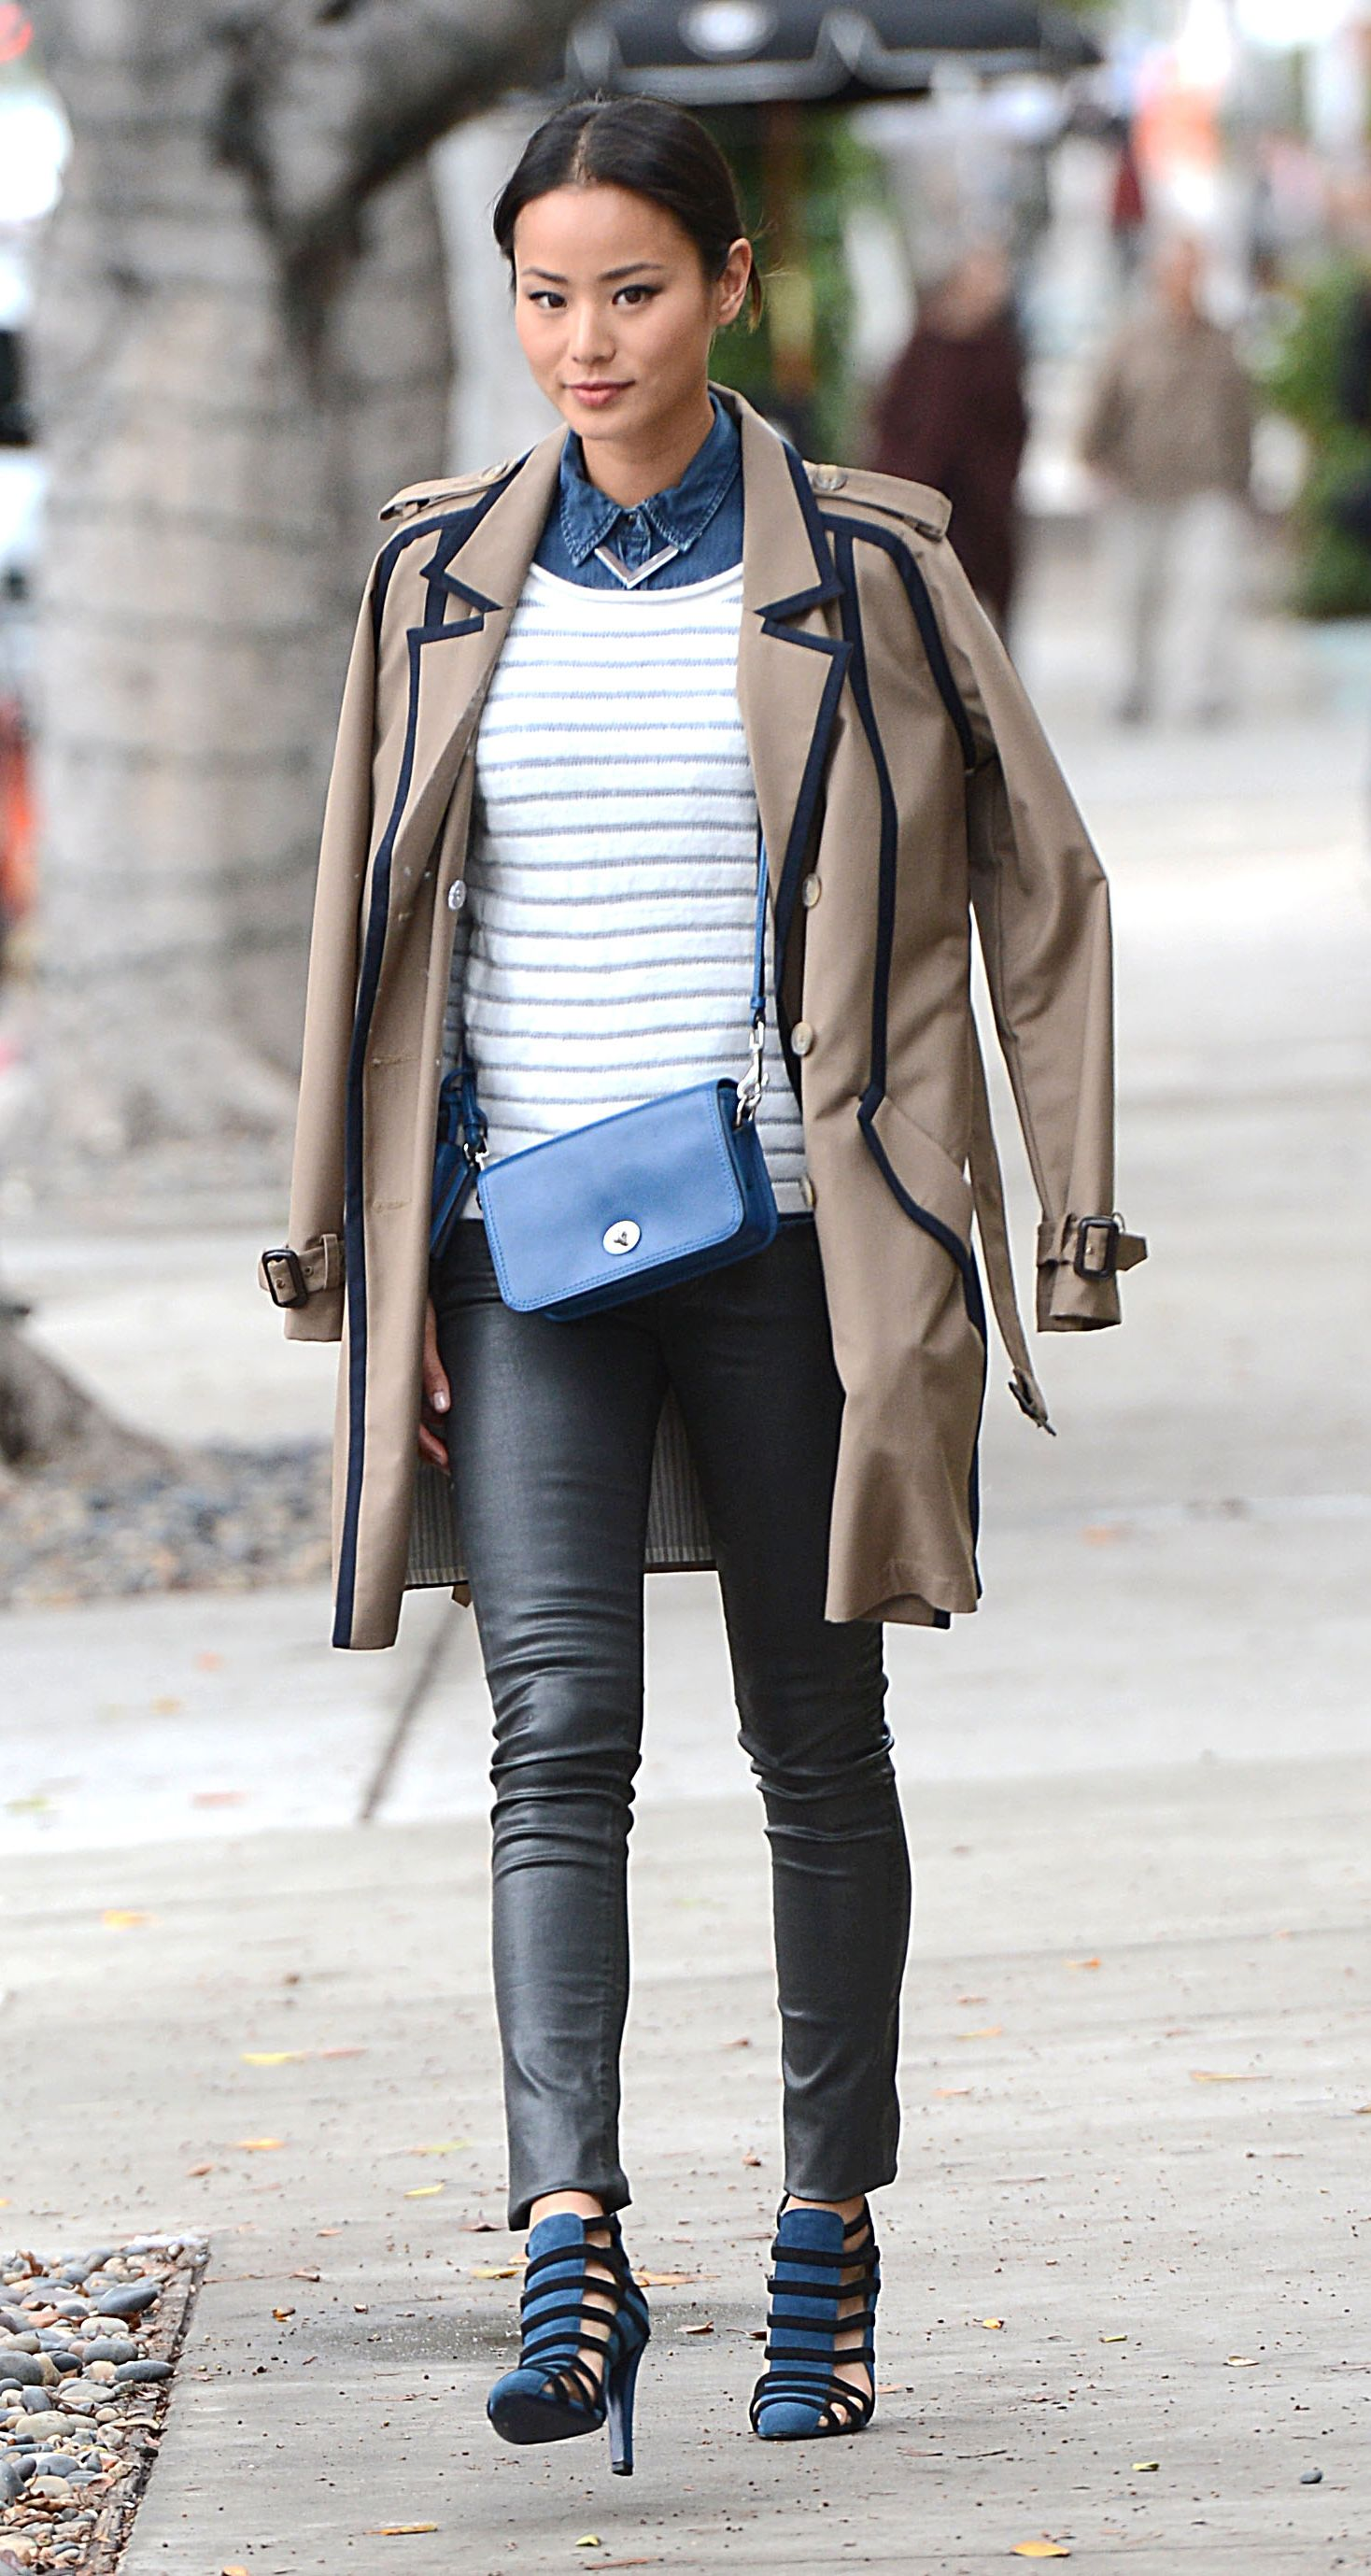 ... Spotted in Coach Jamie Chung with the Penny Shoulder Purse. Image  Courtesy of Splash ... 7834e2fe08